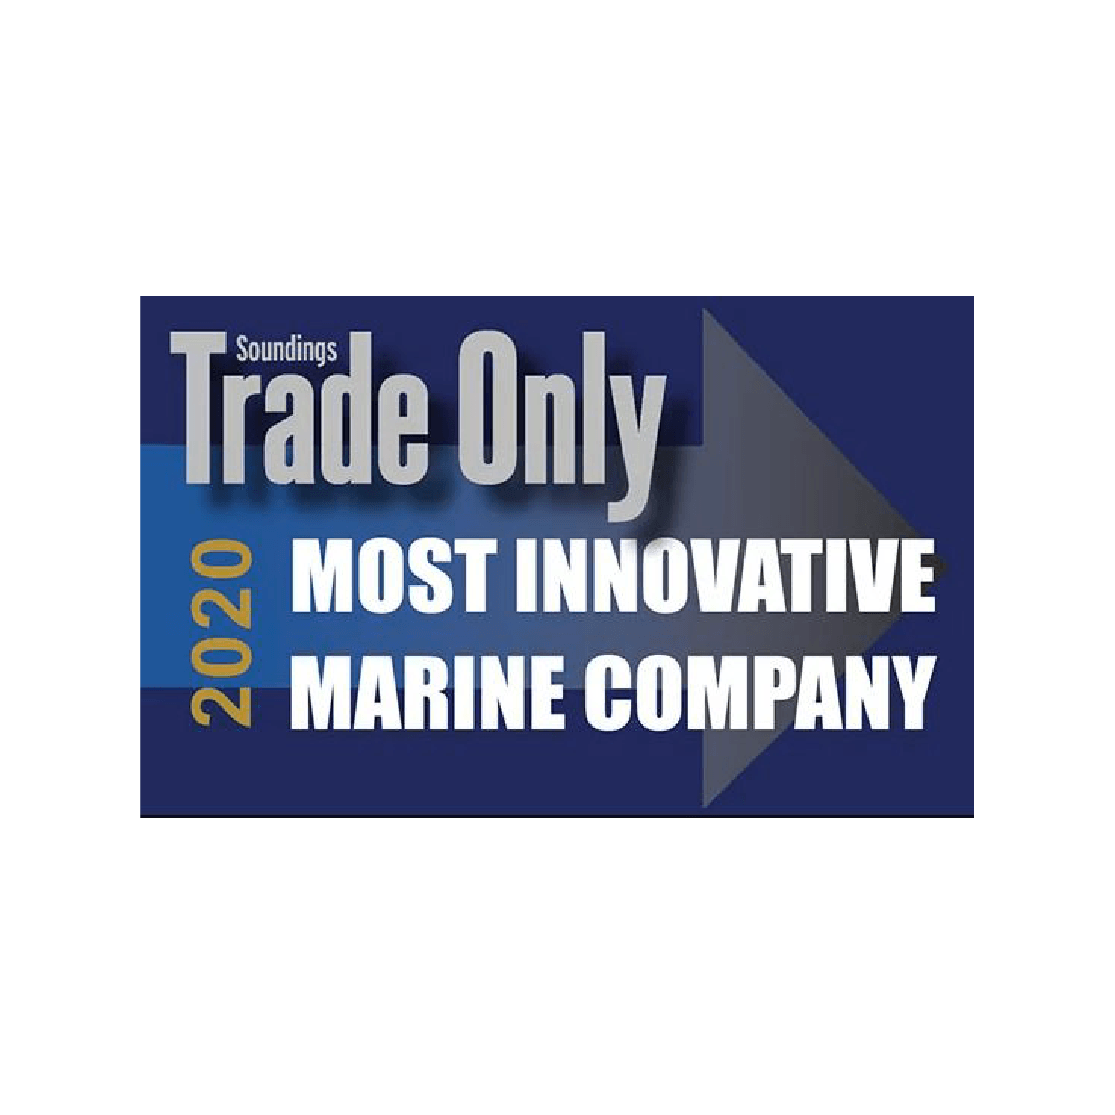 Learn more at https://www.tradeonlytoday.com/industry-news/soundings-trade-only-announces-its-top-10-most-innovative-marine-companies-awards